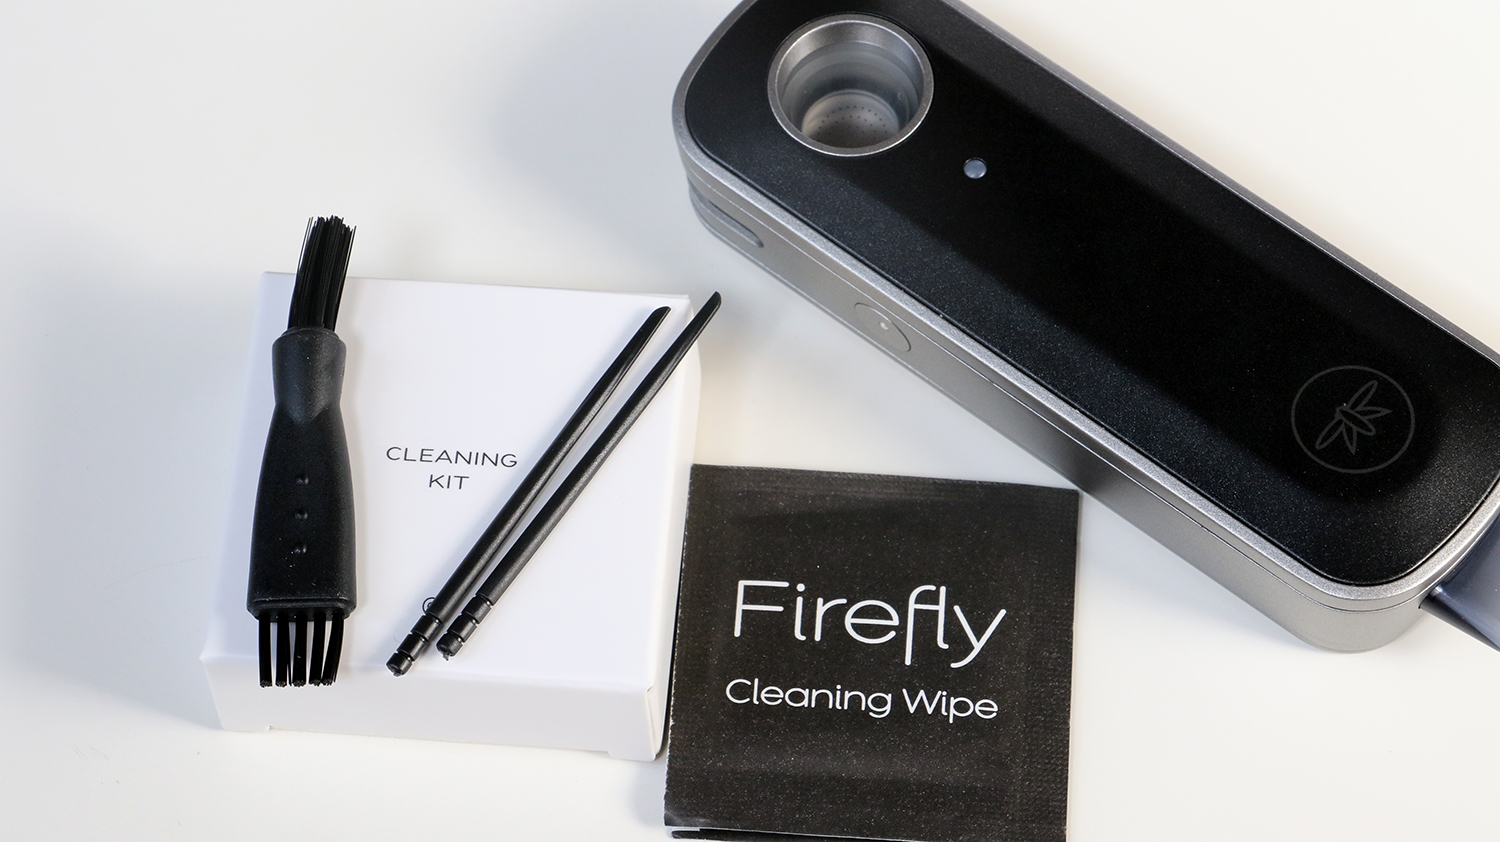 Firefly 2 cleaning kit reviewed by Vape Pen Pro